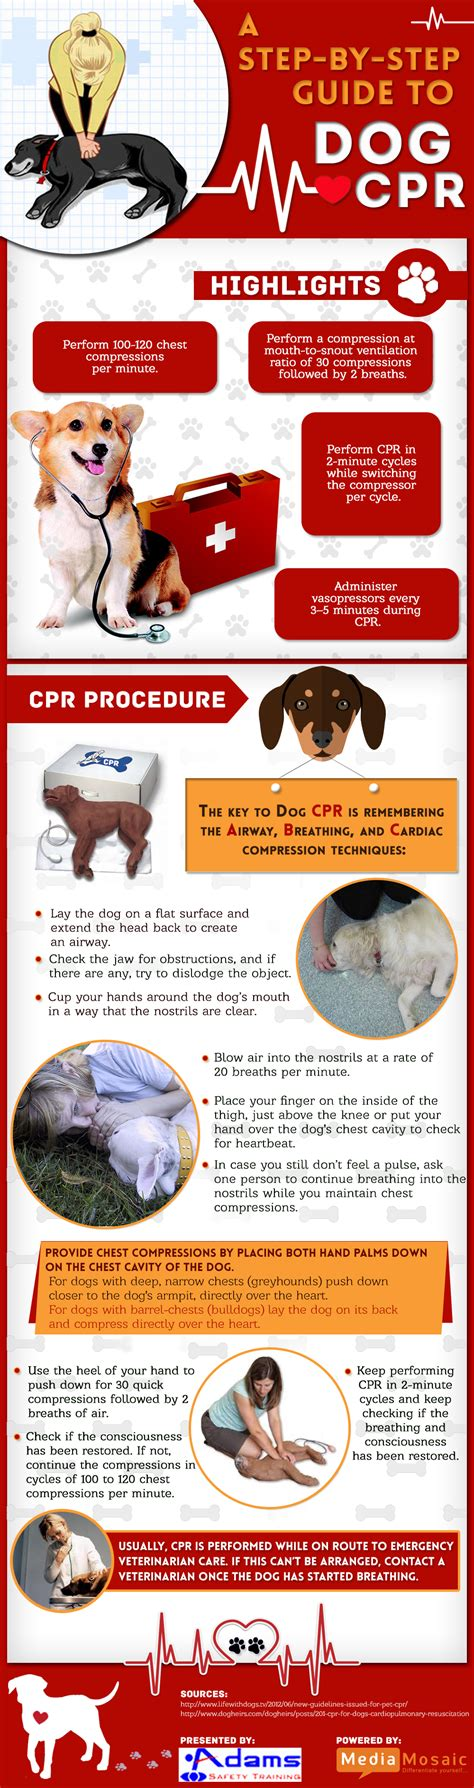 cpr on a how to perform cpr on a infographic safety